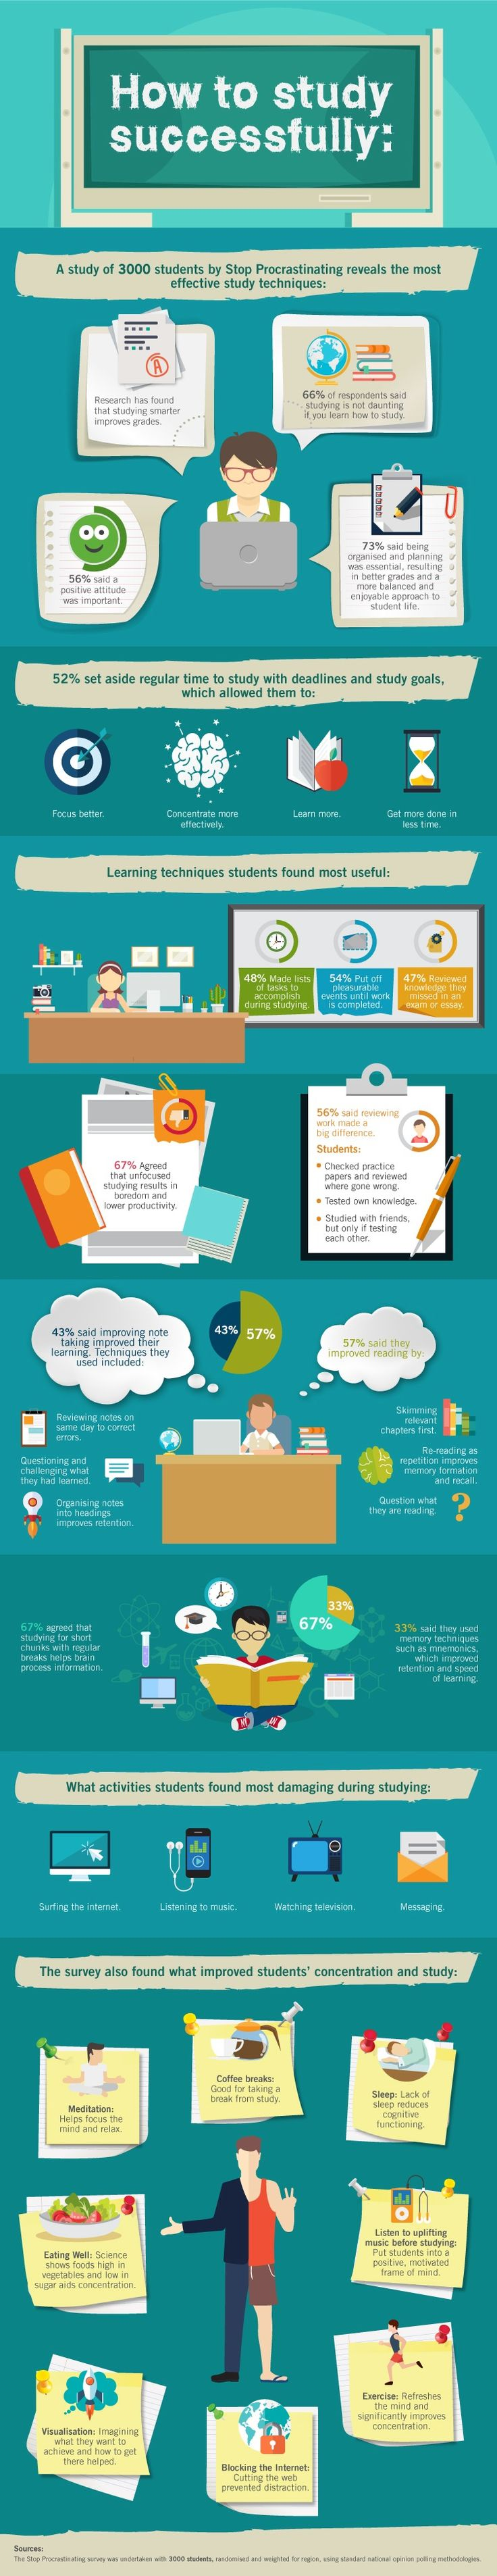 How to Study Successfully Infographic - http://elearninginfographics.com/study-successfully-infographic/